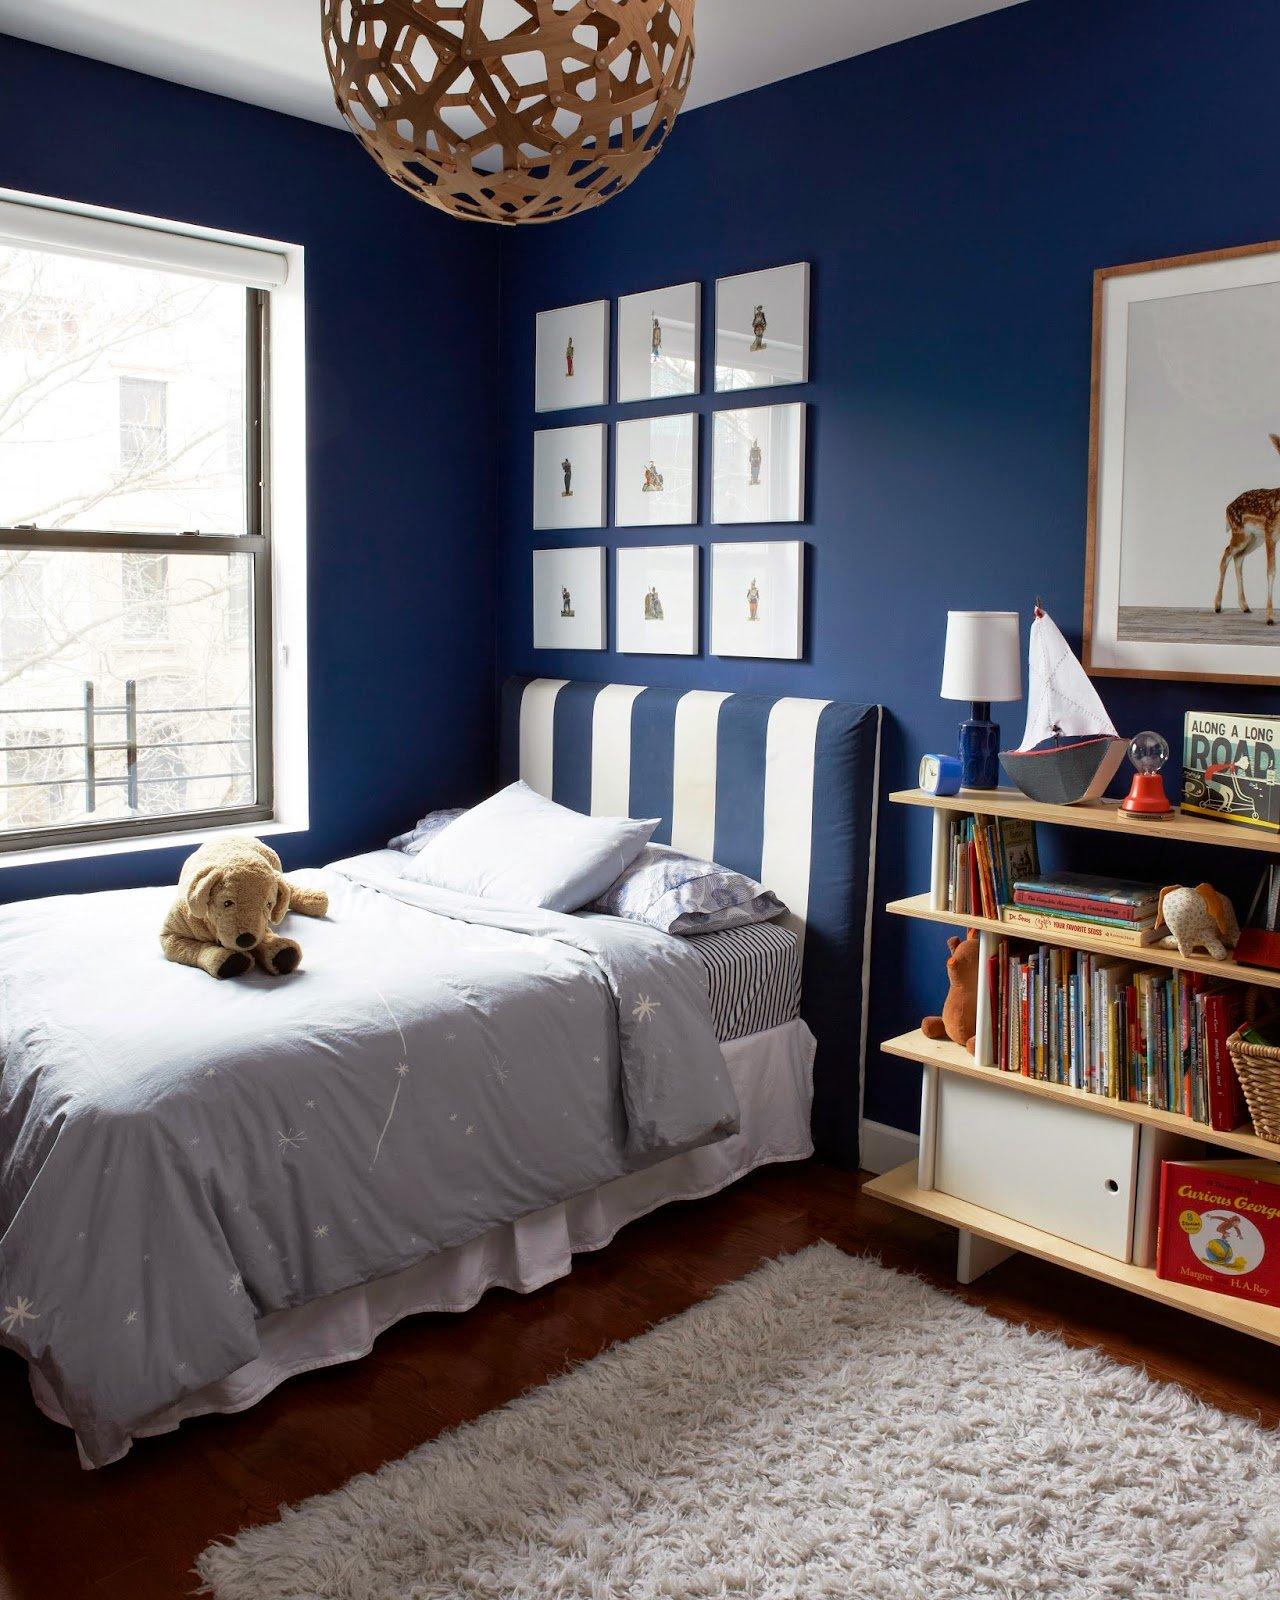 Help! Which Bedroom Paint Color Would You Choose?